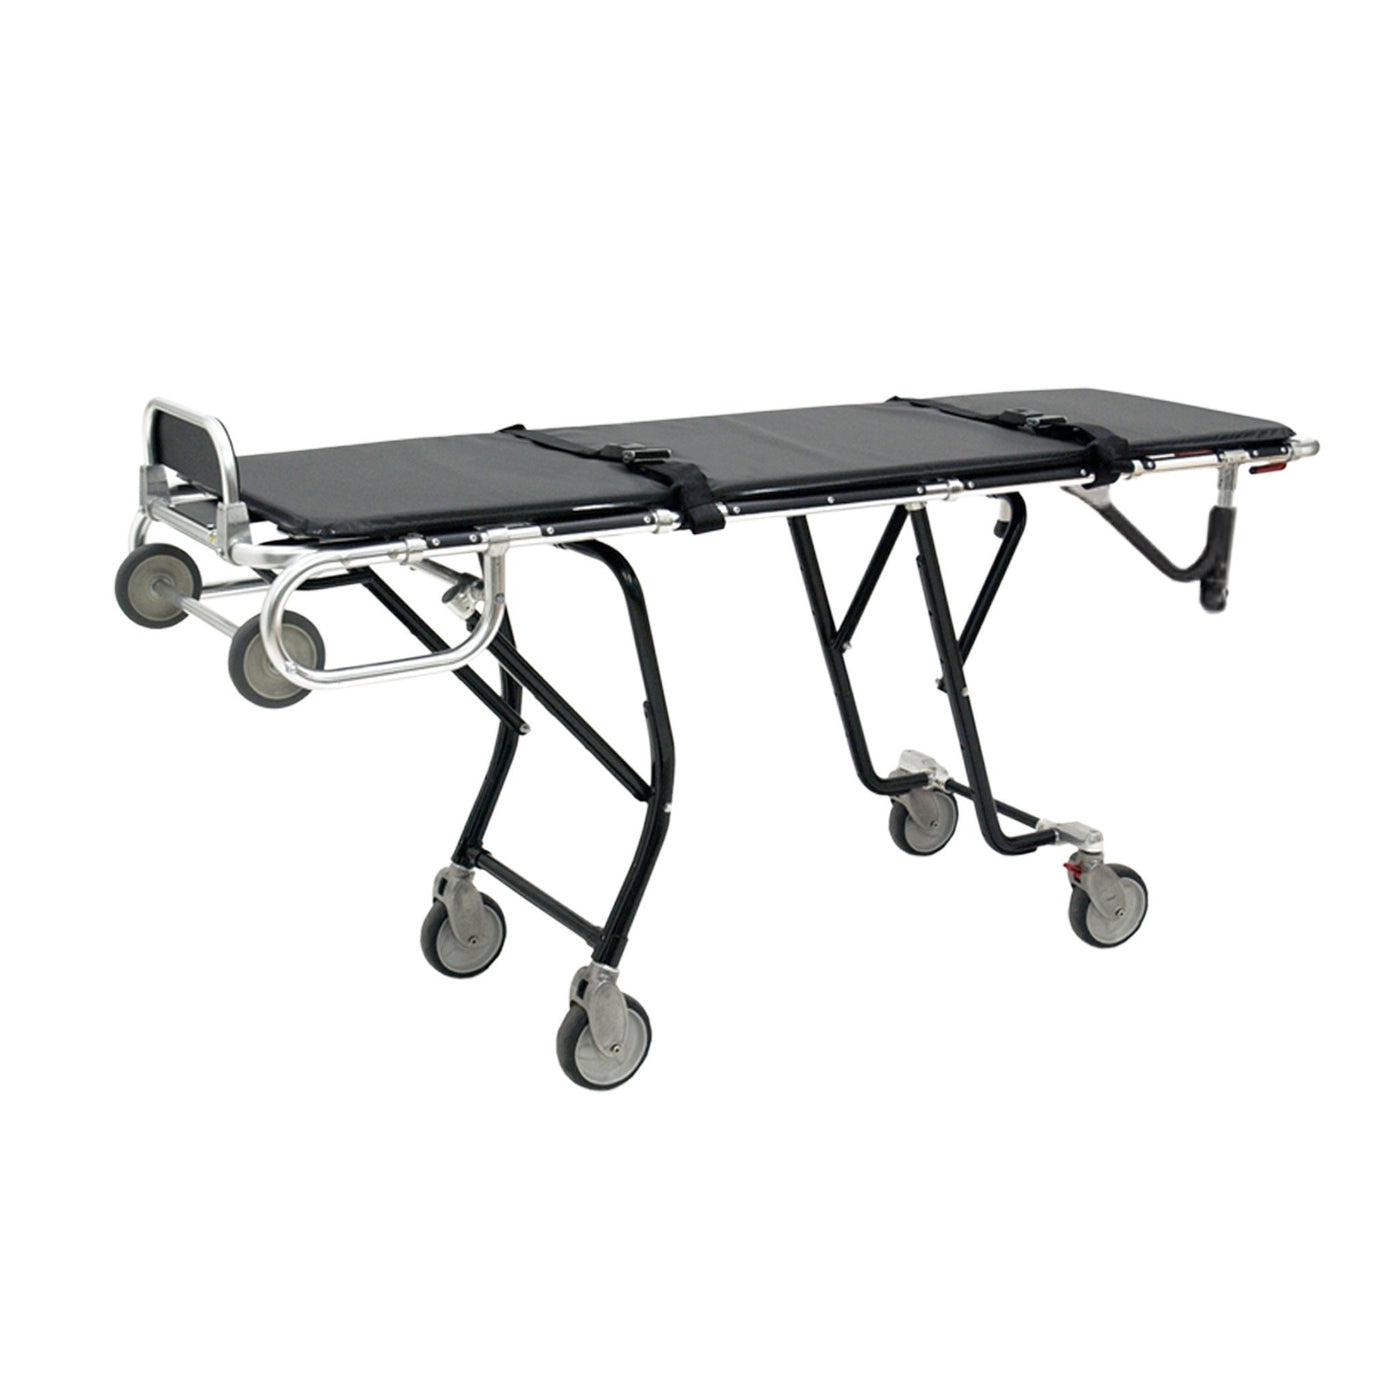 Side-by-Side Bariatric Mortuary Cot-Body Transporter-Mortech Manufacturing Company Inc. Quality Stainless Steel Autopsy, Morgue, Funeral Home, Necropsy, Veterinary / Anatomy, Dissection Equipment and Accessories